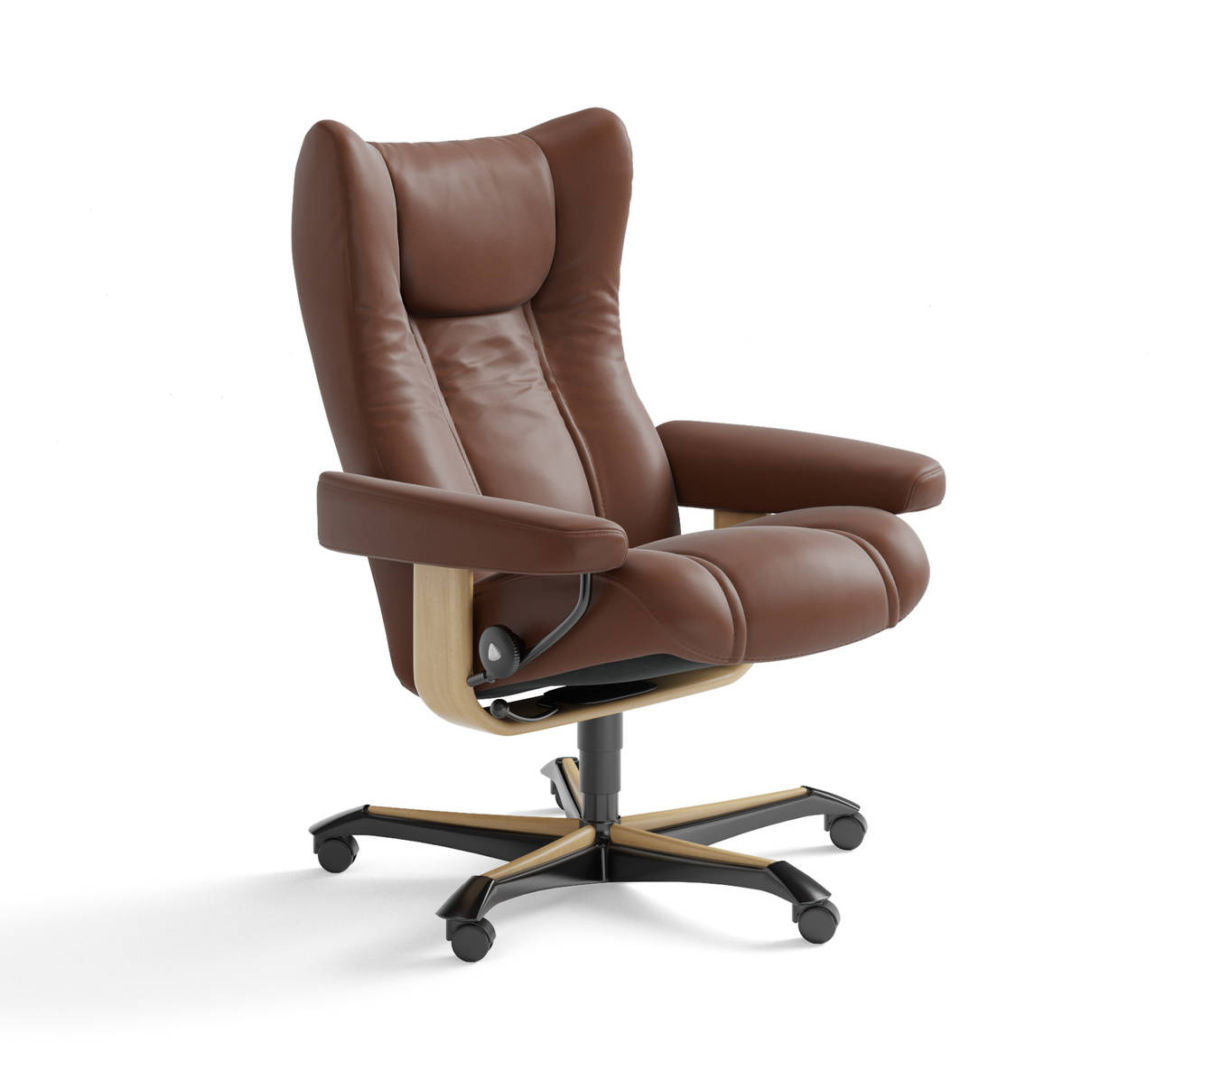 Stressless Office Chair Stressless Wing Office Chair The Century House Madison Wi